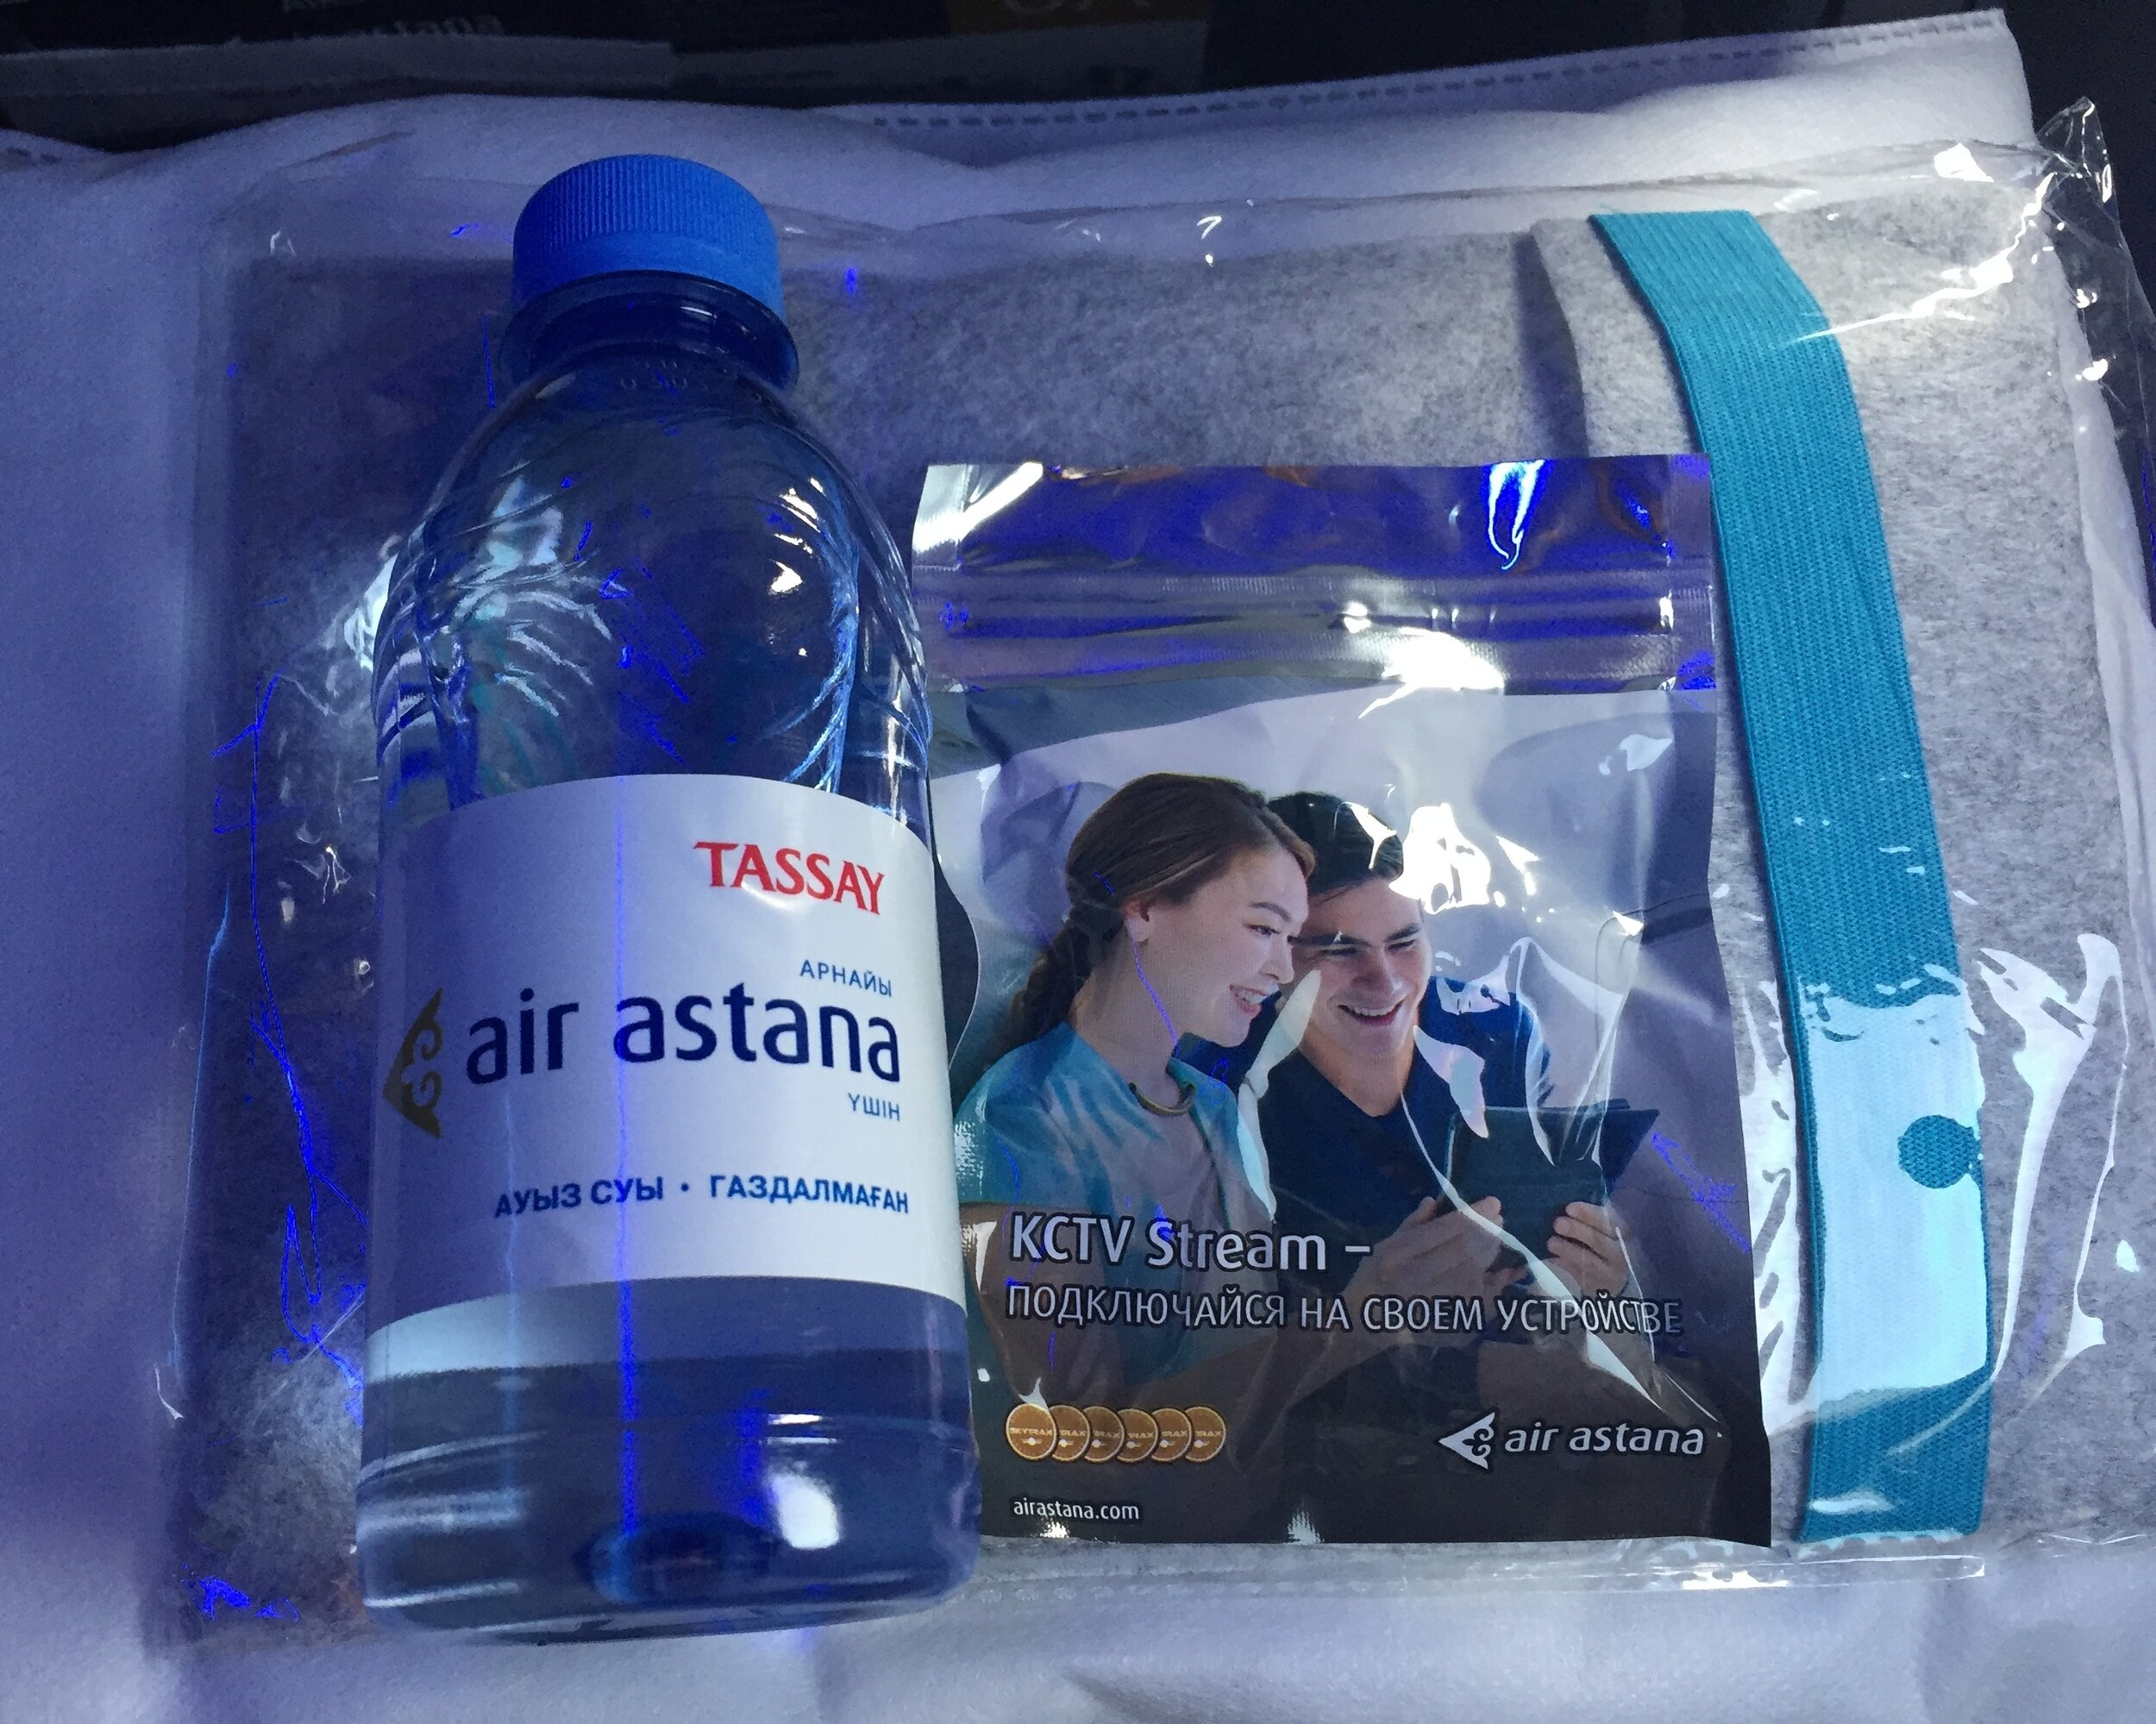 air astana freebies.JPG